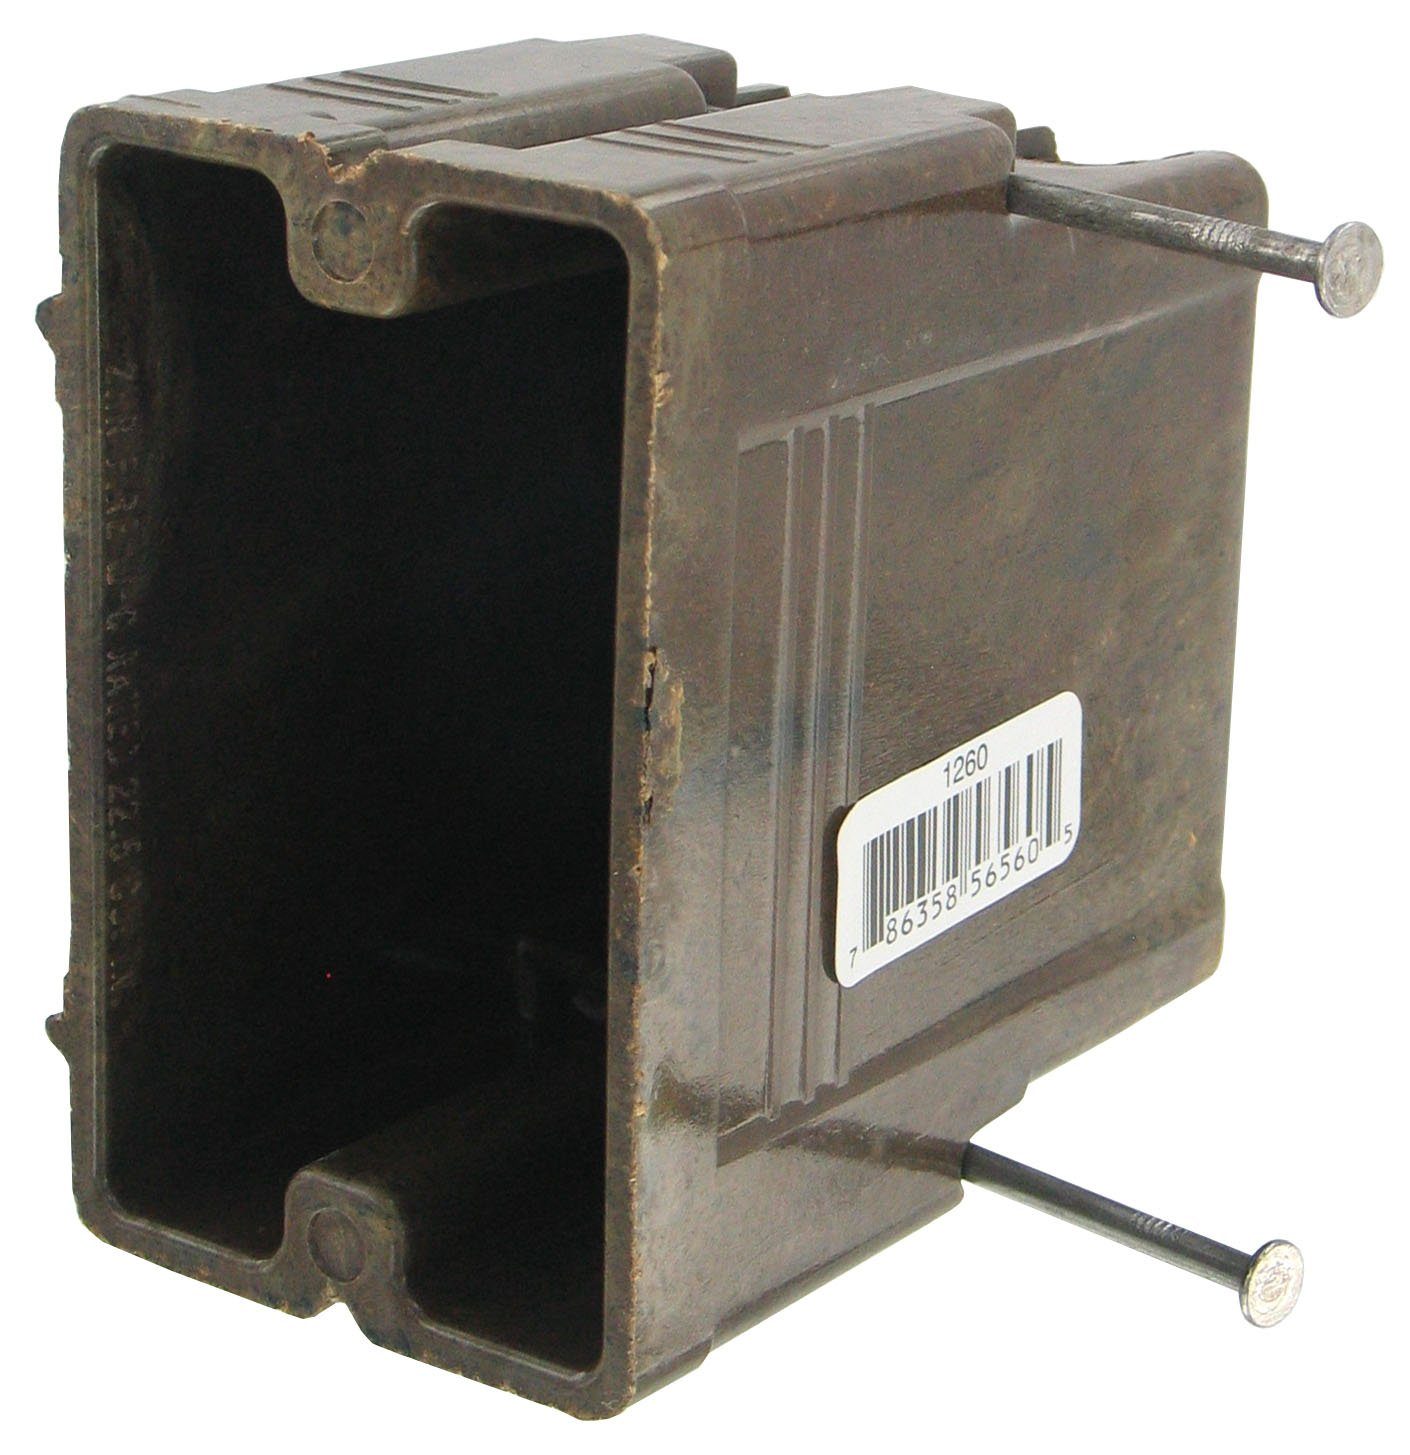 Thomas &  Betts CL 1260 NON-METAL ELECT. OUTLET BOX (Pack of 100)